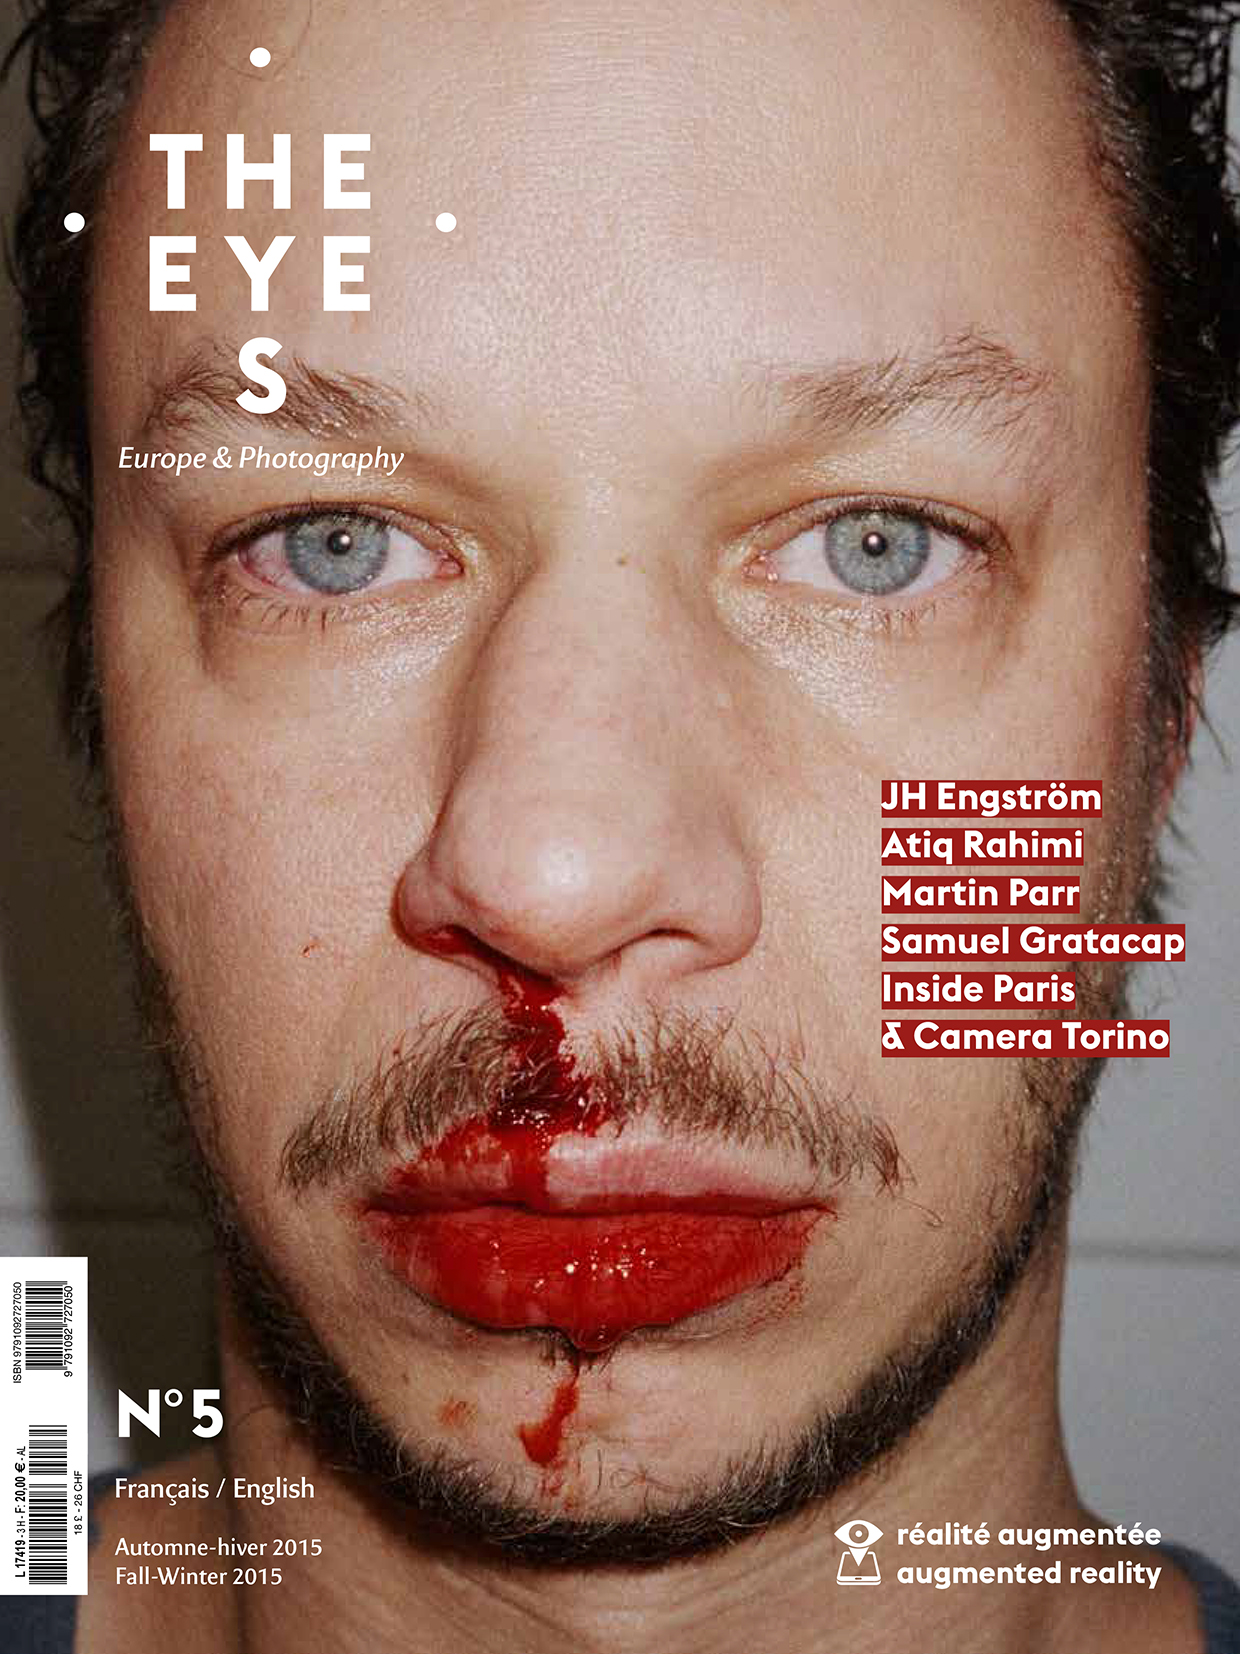 TheEyes_5_Cover2.jpg